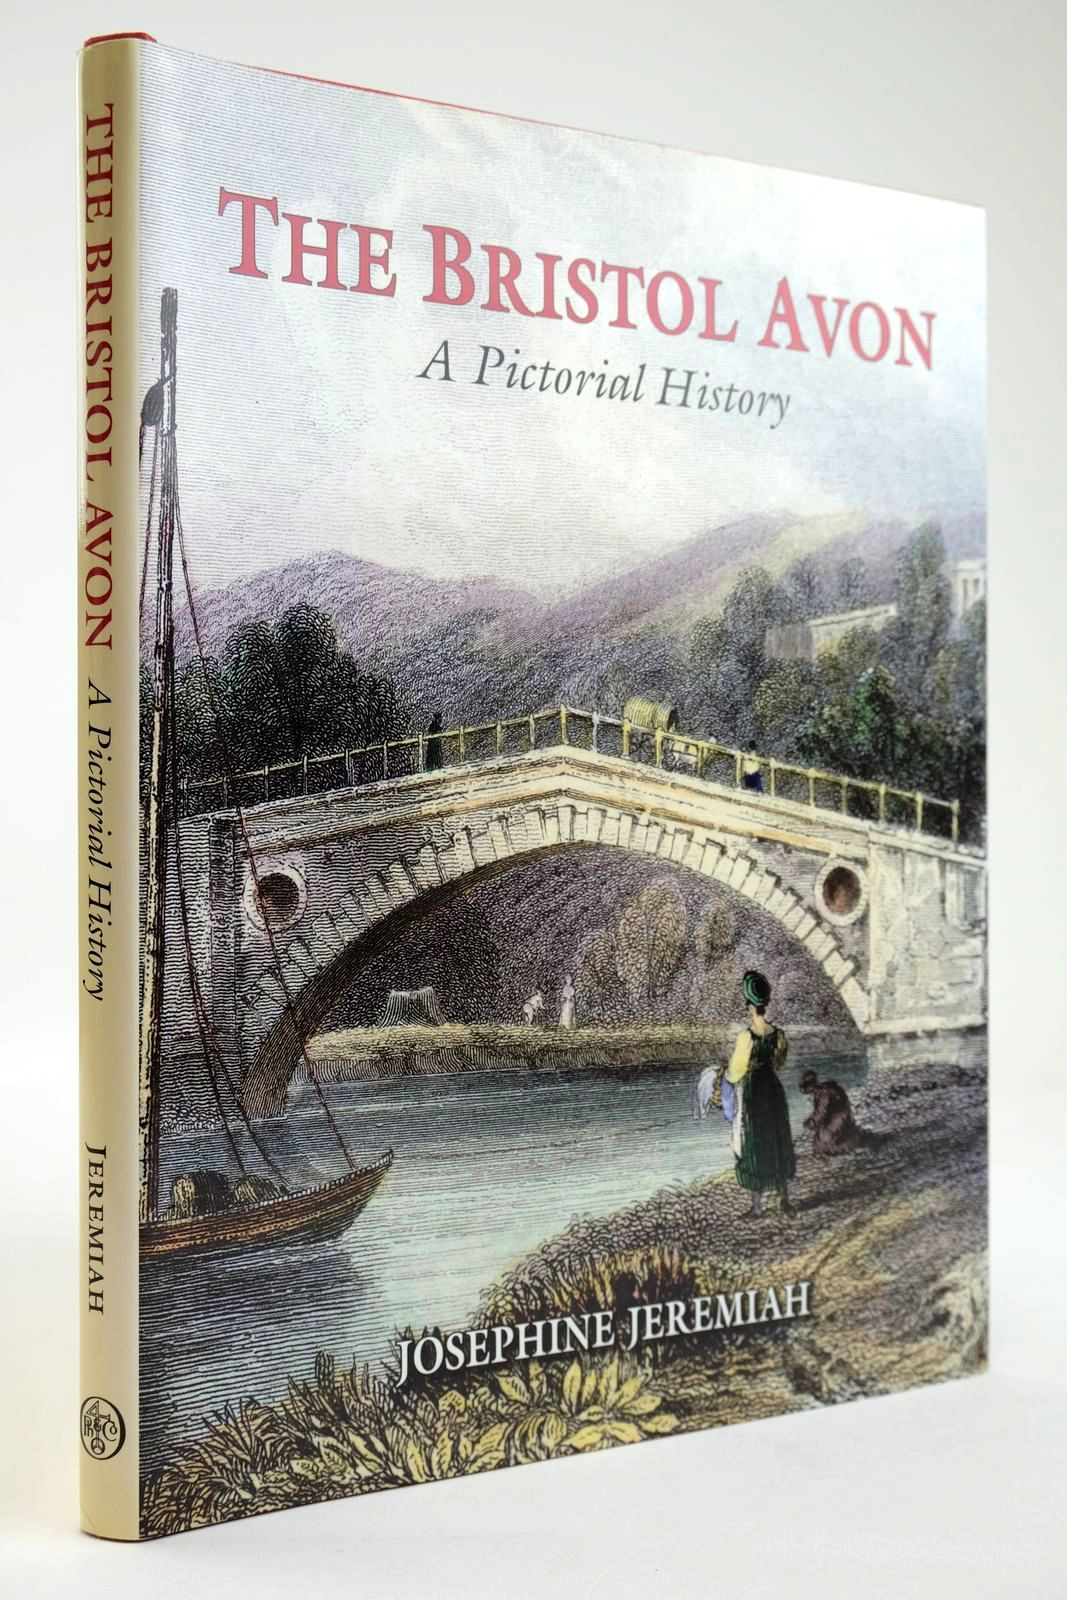 Photo of THE BRISTOL AVON A PICTORIAL HISTORY written by Jeremiah, Josephine published by Phillimore (STOCK CODE: 2133548)  for sale by Stella & Rose's Books